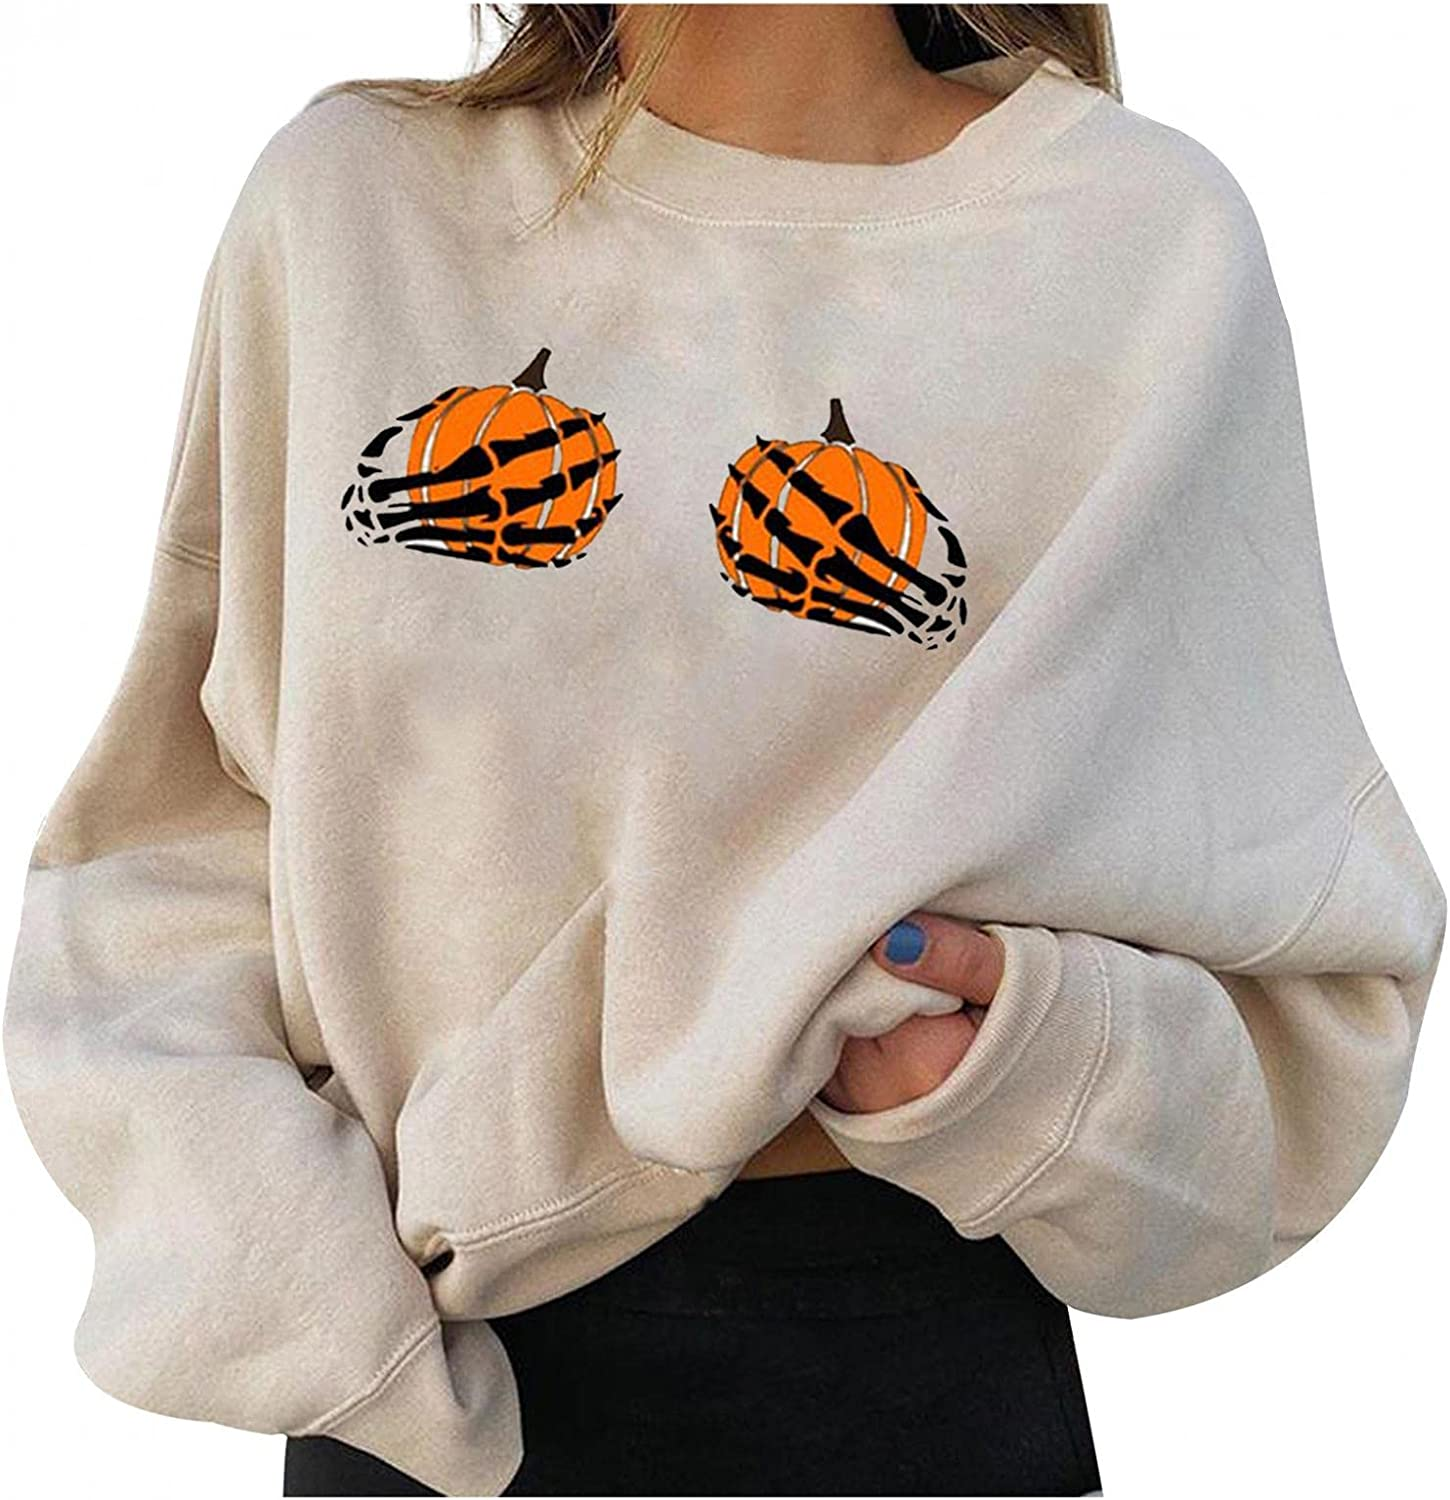 AODONG Halloween Sweatshirts for Women, Womens Plus Size Tops Pumpkin Skeleton Funny Printed Oversized Pullover Shirts